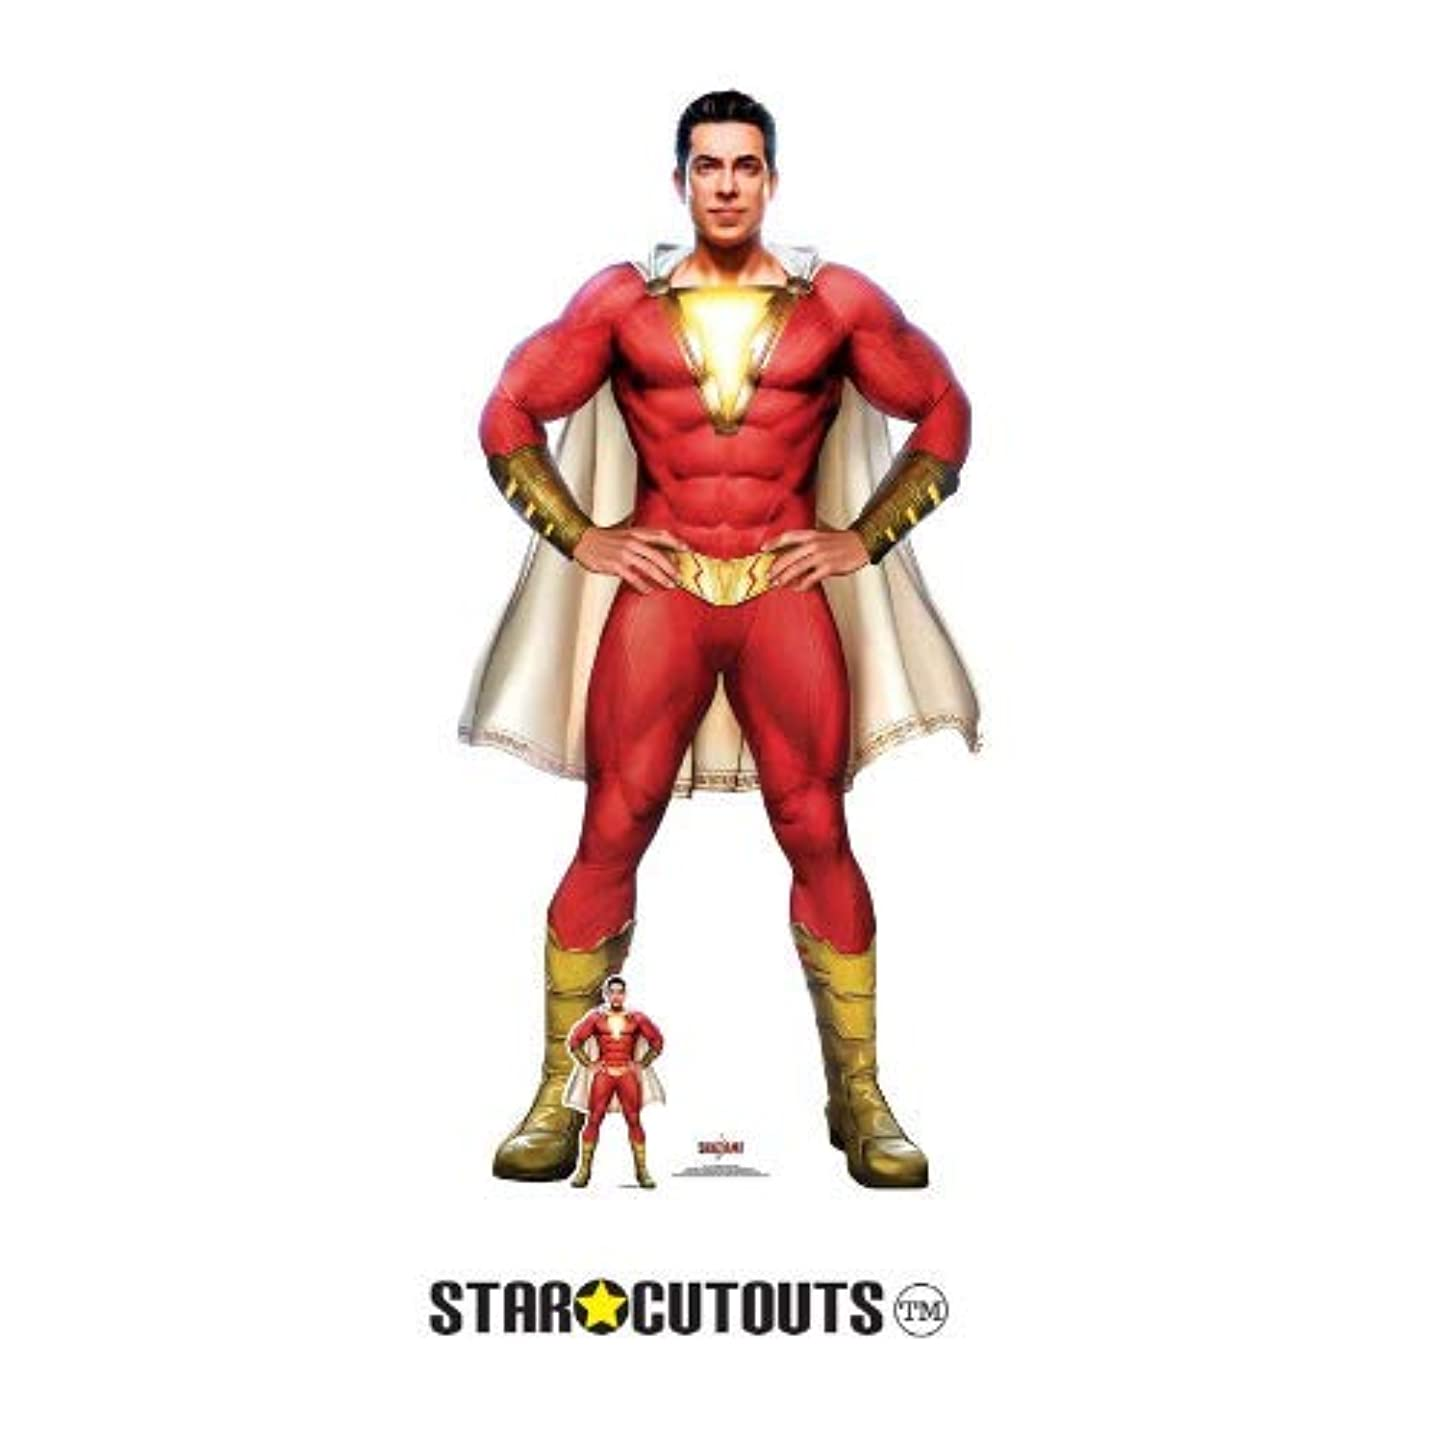 Star Cutouts SC1337 Shazam Cape Stylised (Zachary Levi) Lifesize Cardboard Cutout 190cm Tall 104cm Wide, Multicolour